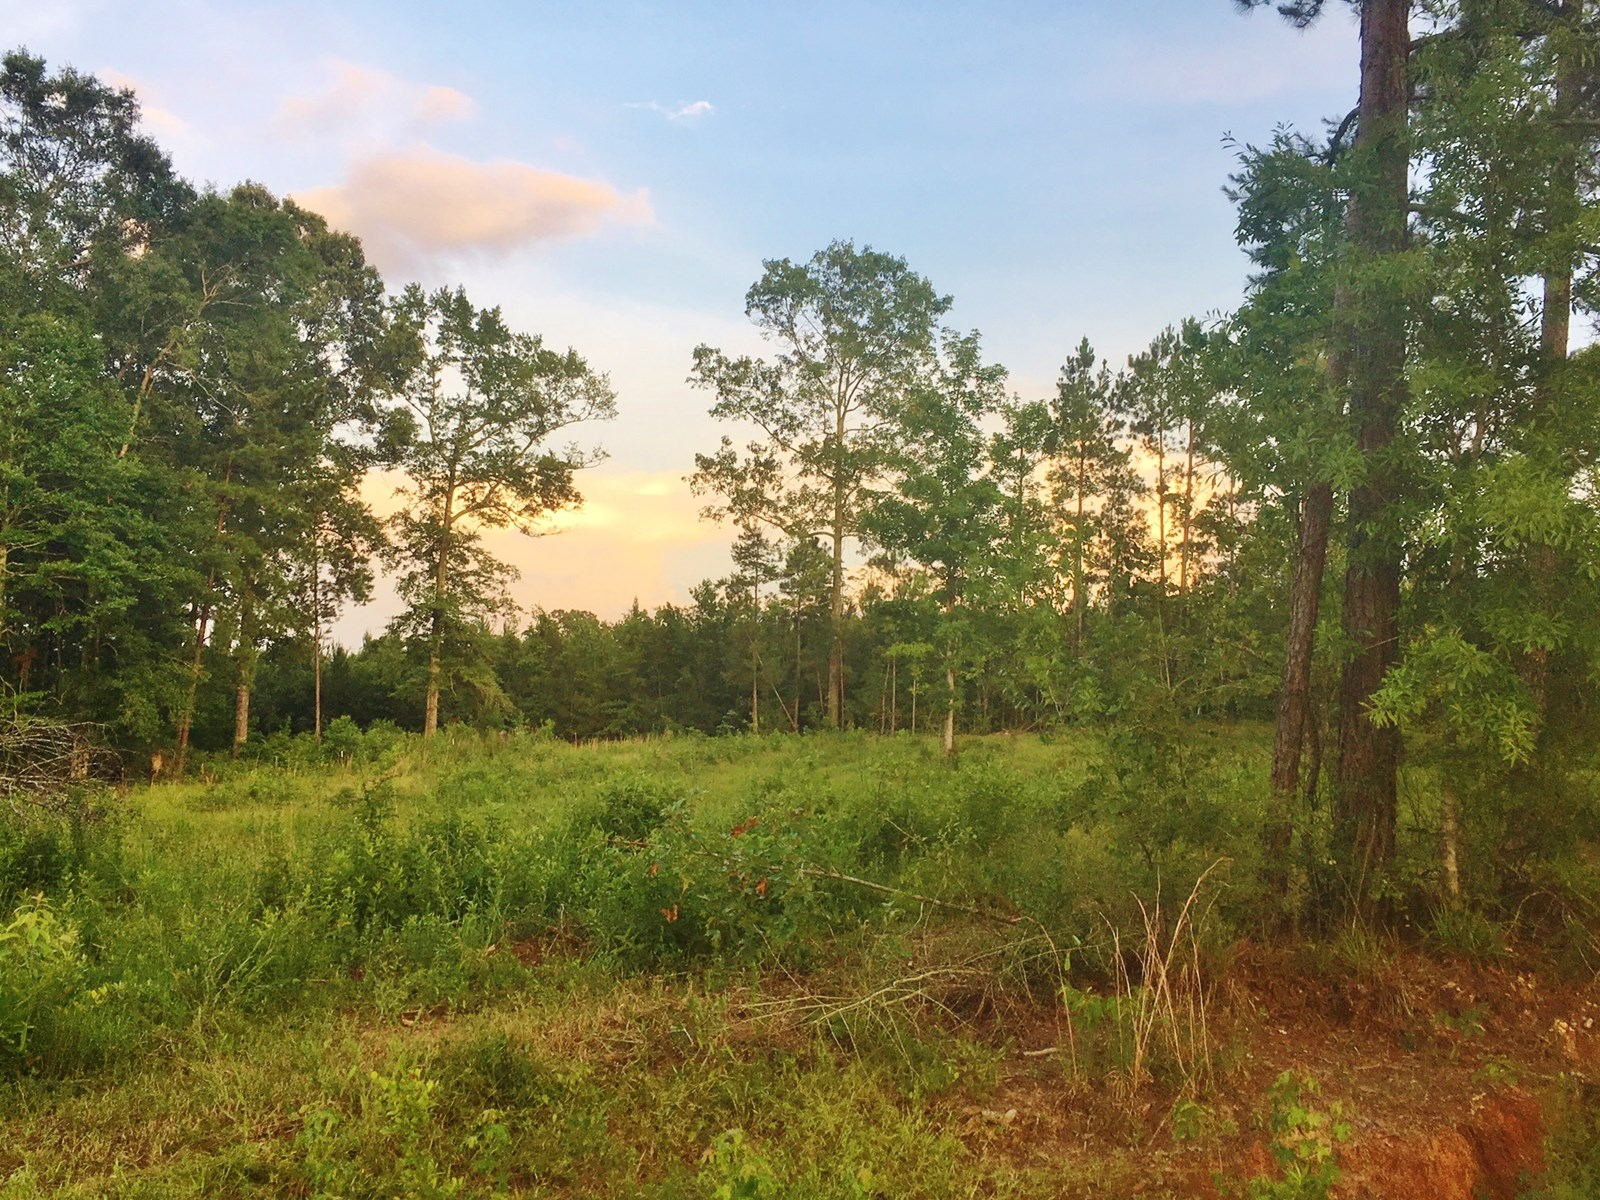 37 Acres Land for Sale Gloster, Amite County, MS